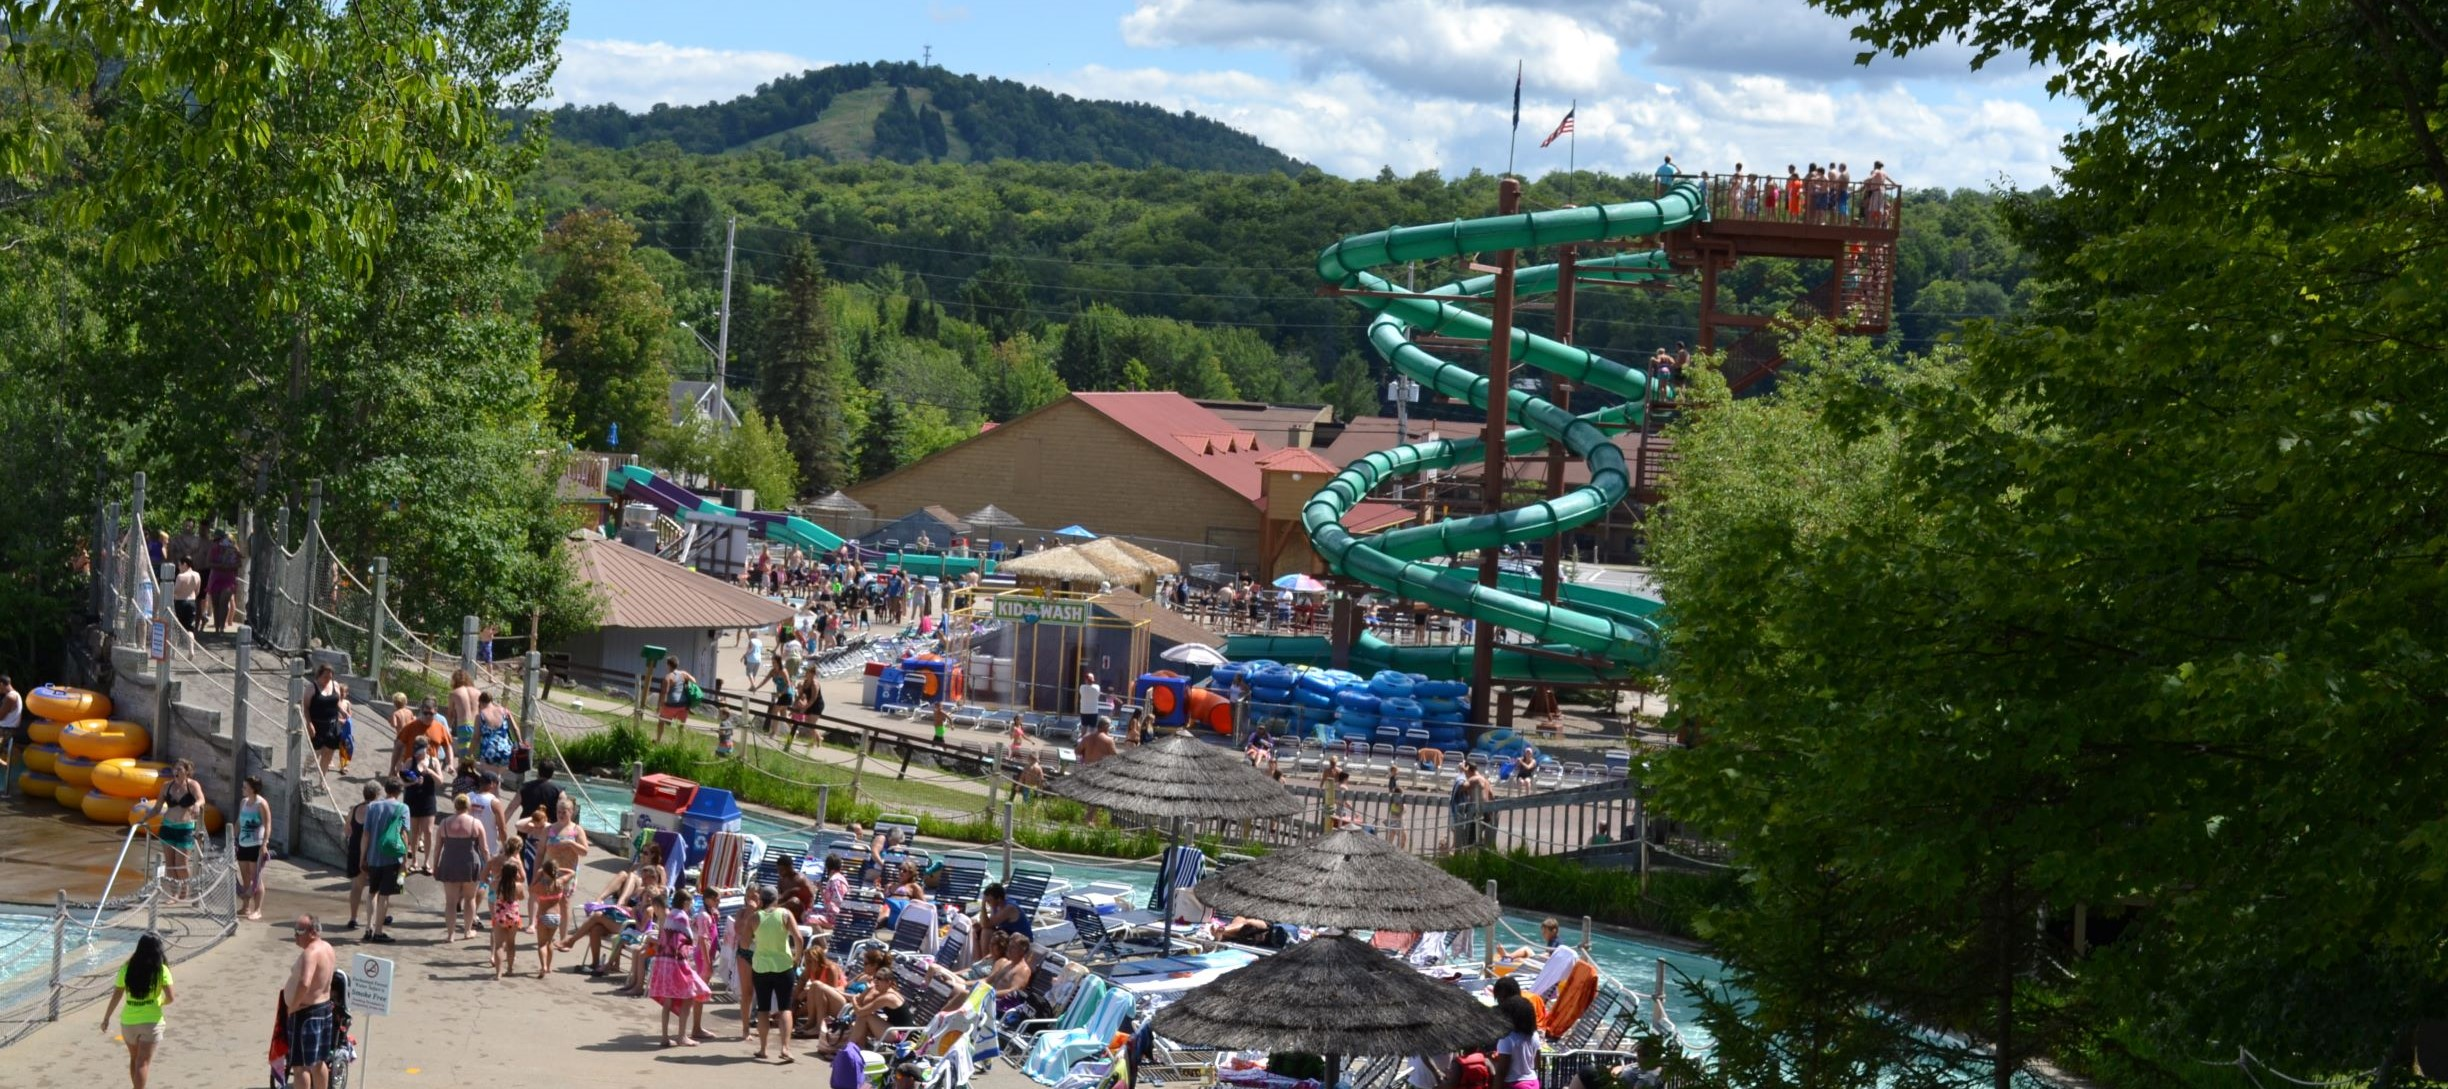 Water slide, outdoors, nature, people